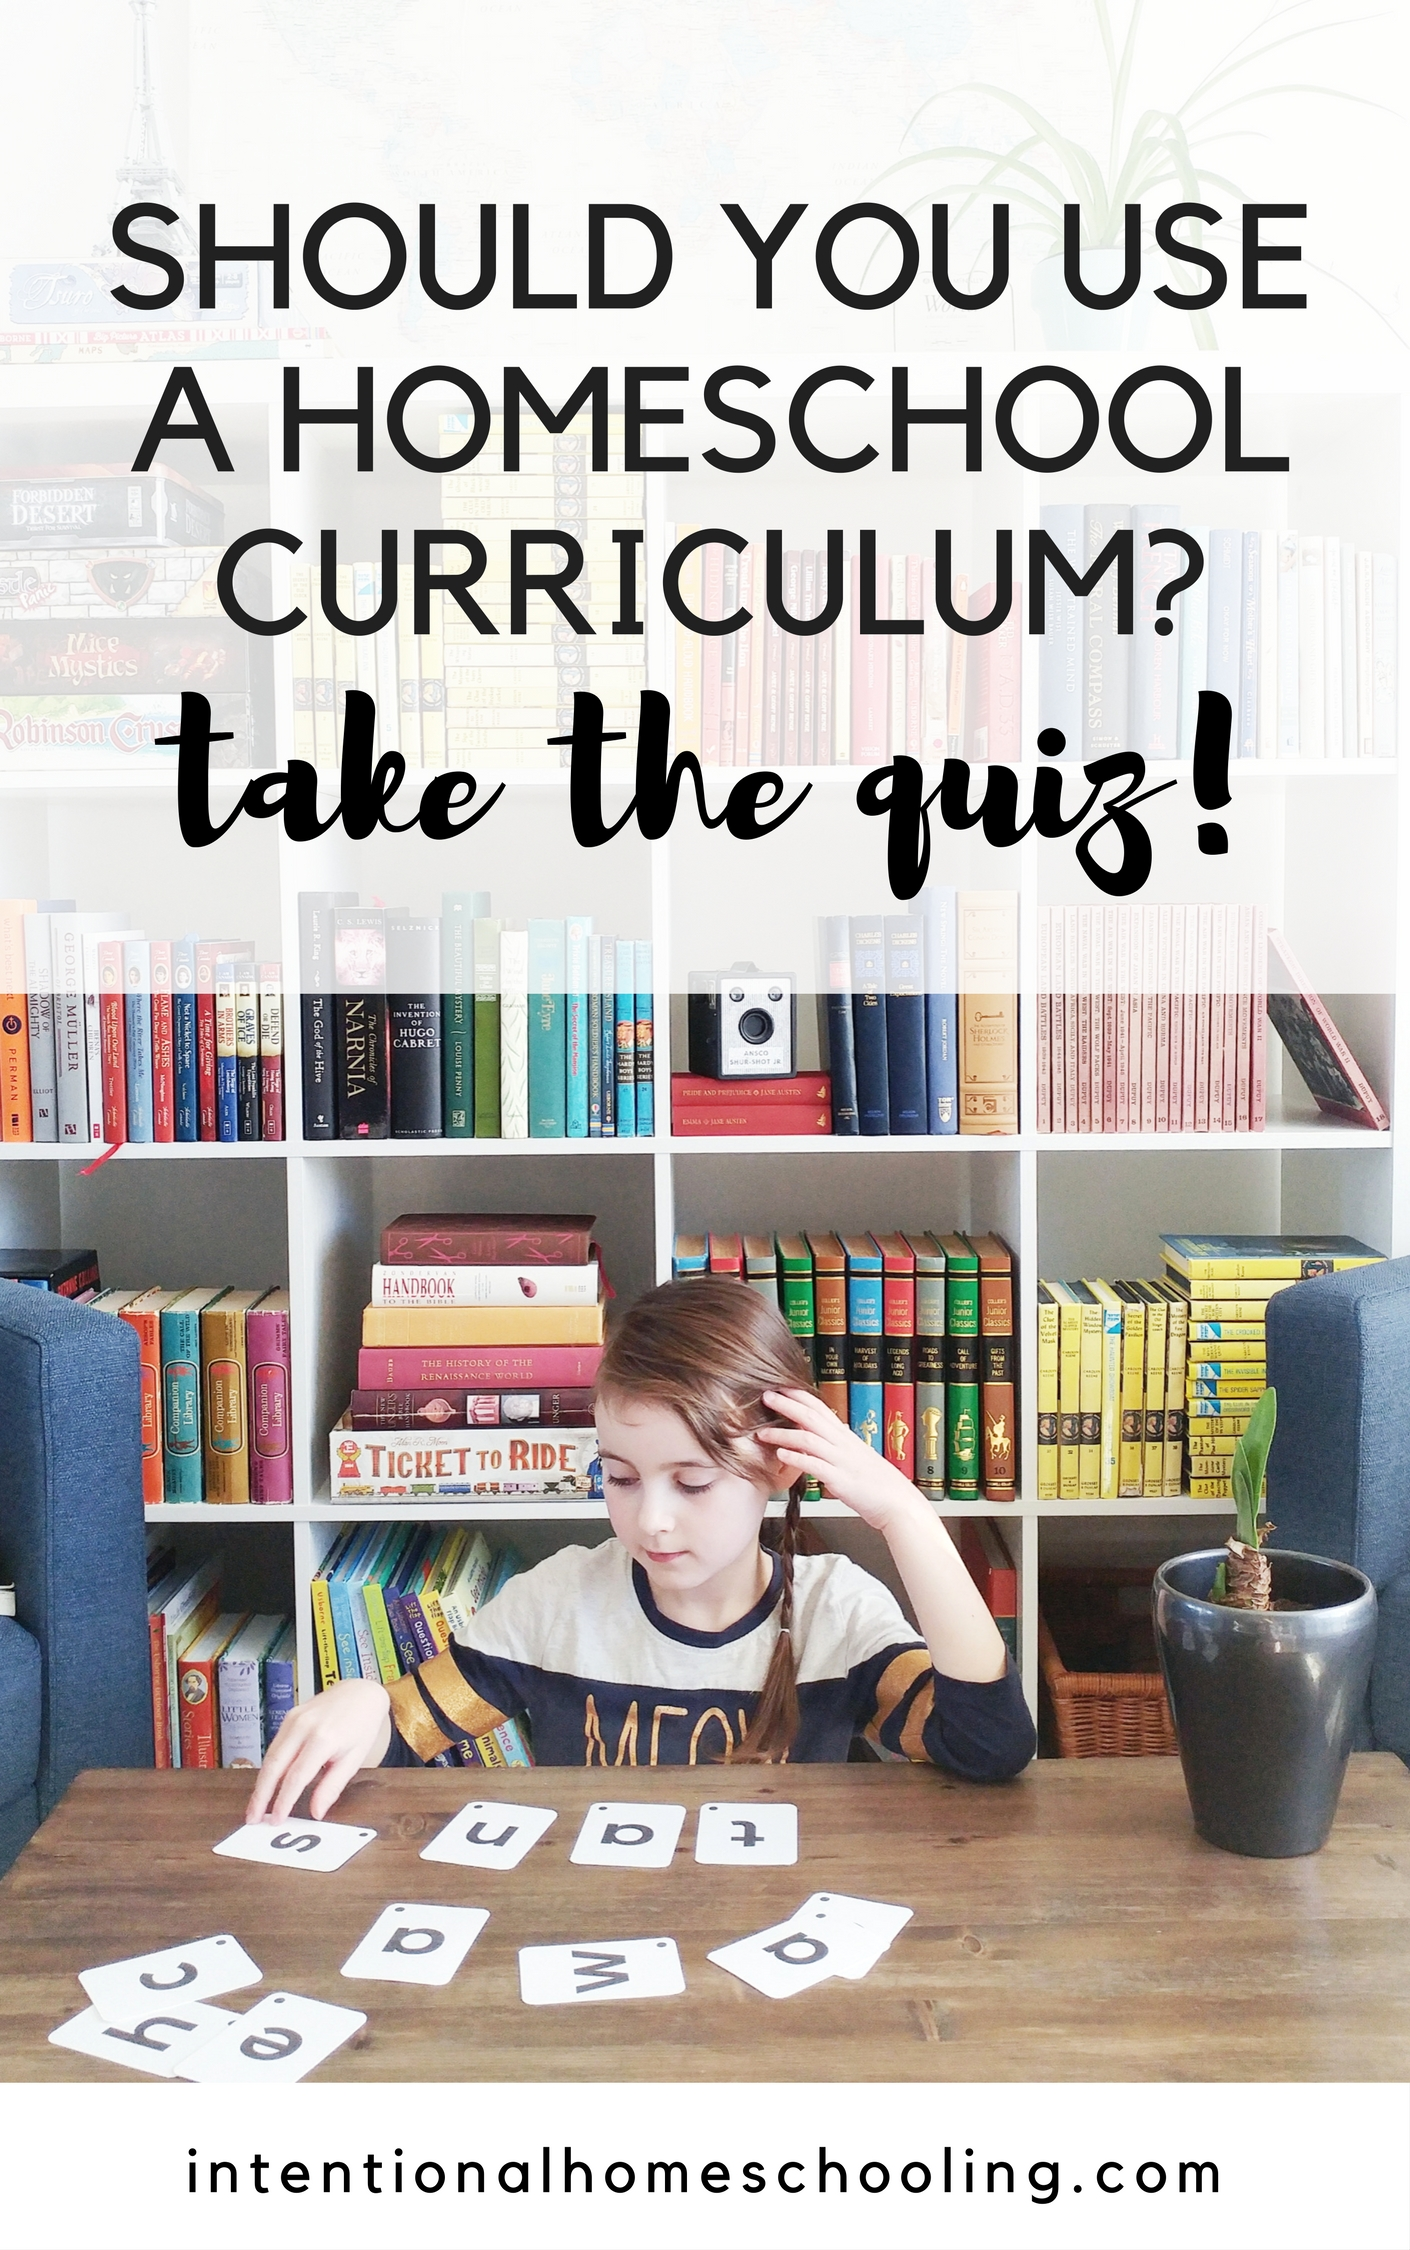 Is Using a Homeschool Curriculum Right for Your Family or Do You Do Better Without a Curriculum or Schedule? Take the quiz to find out!